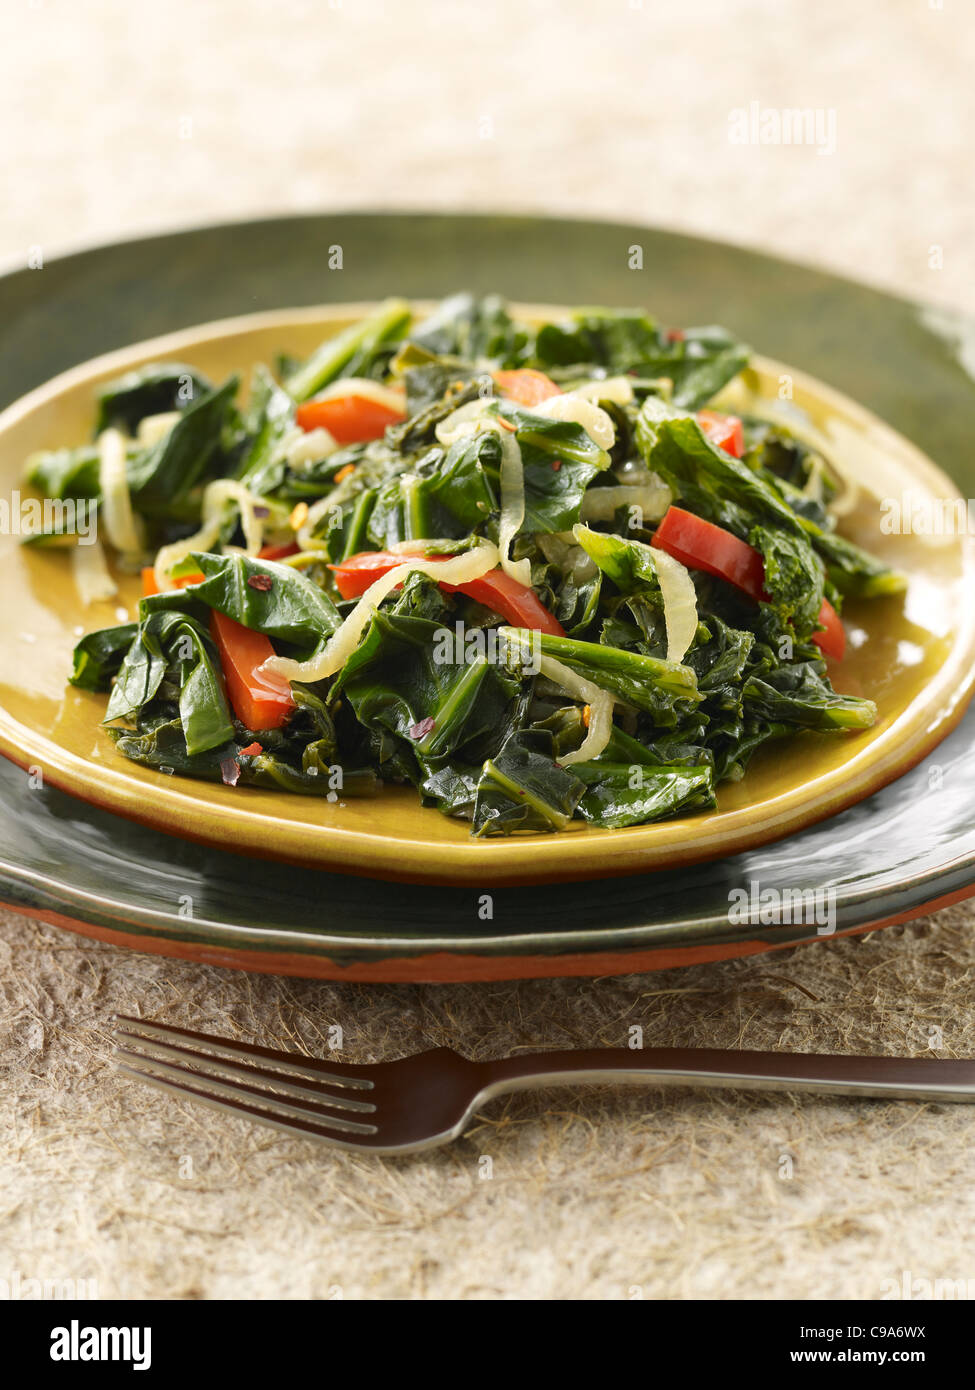 Sauteed leafy greens with onion and red bell peppers, - Stock Image